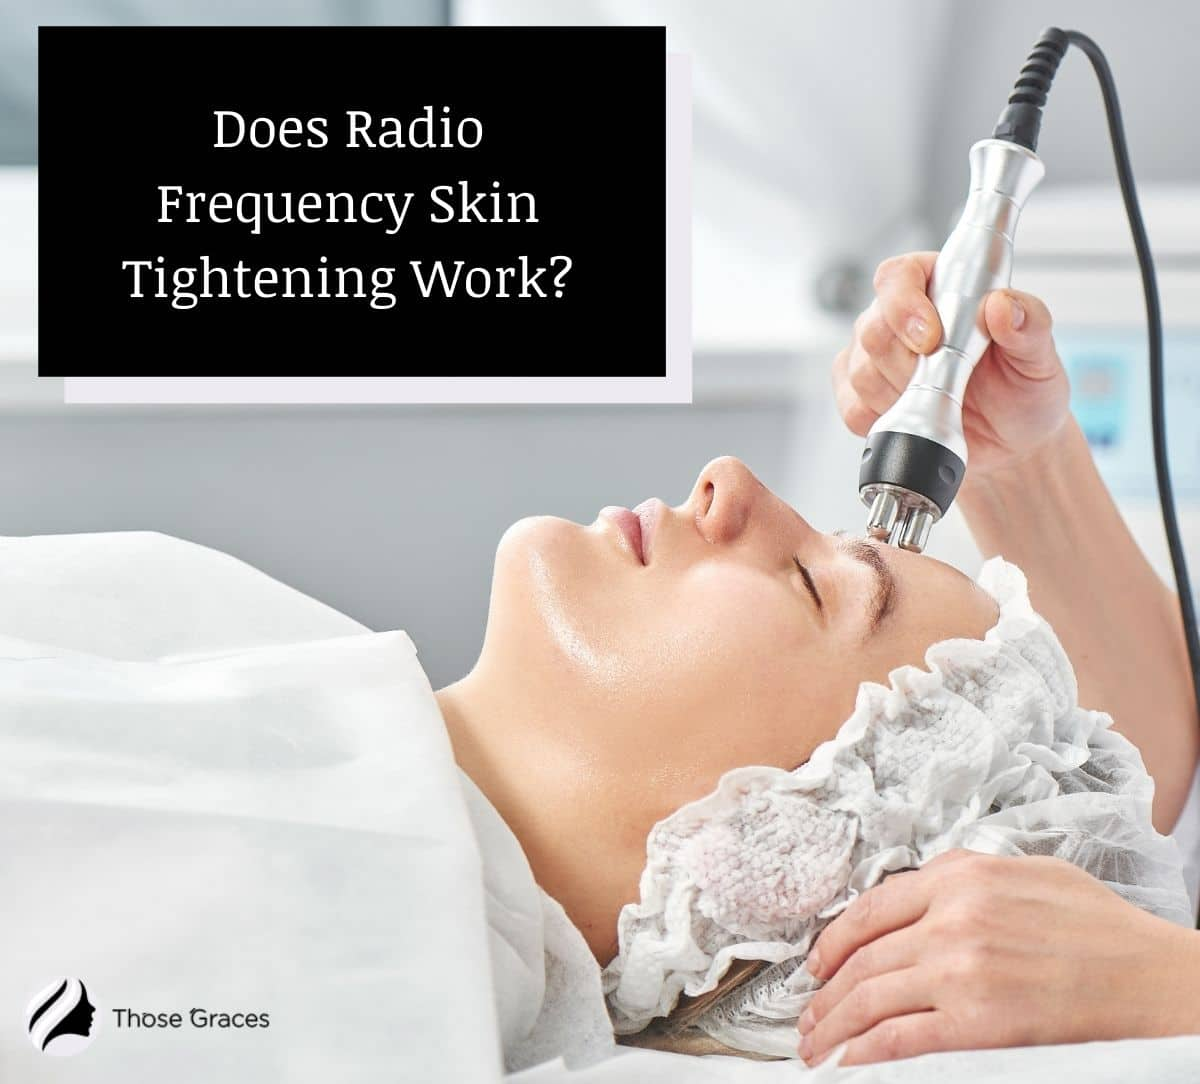 lady having an RF session but does radio frequency skin tightening work?